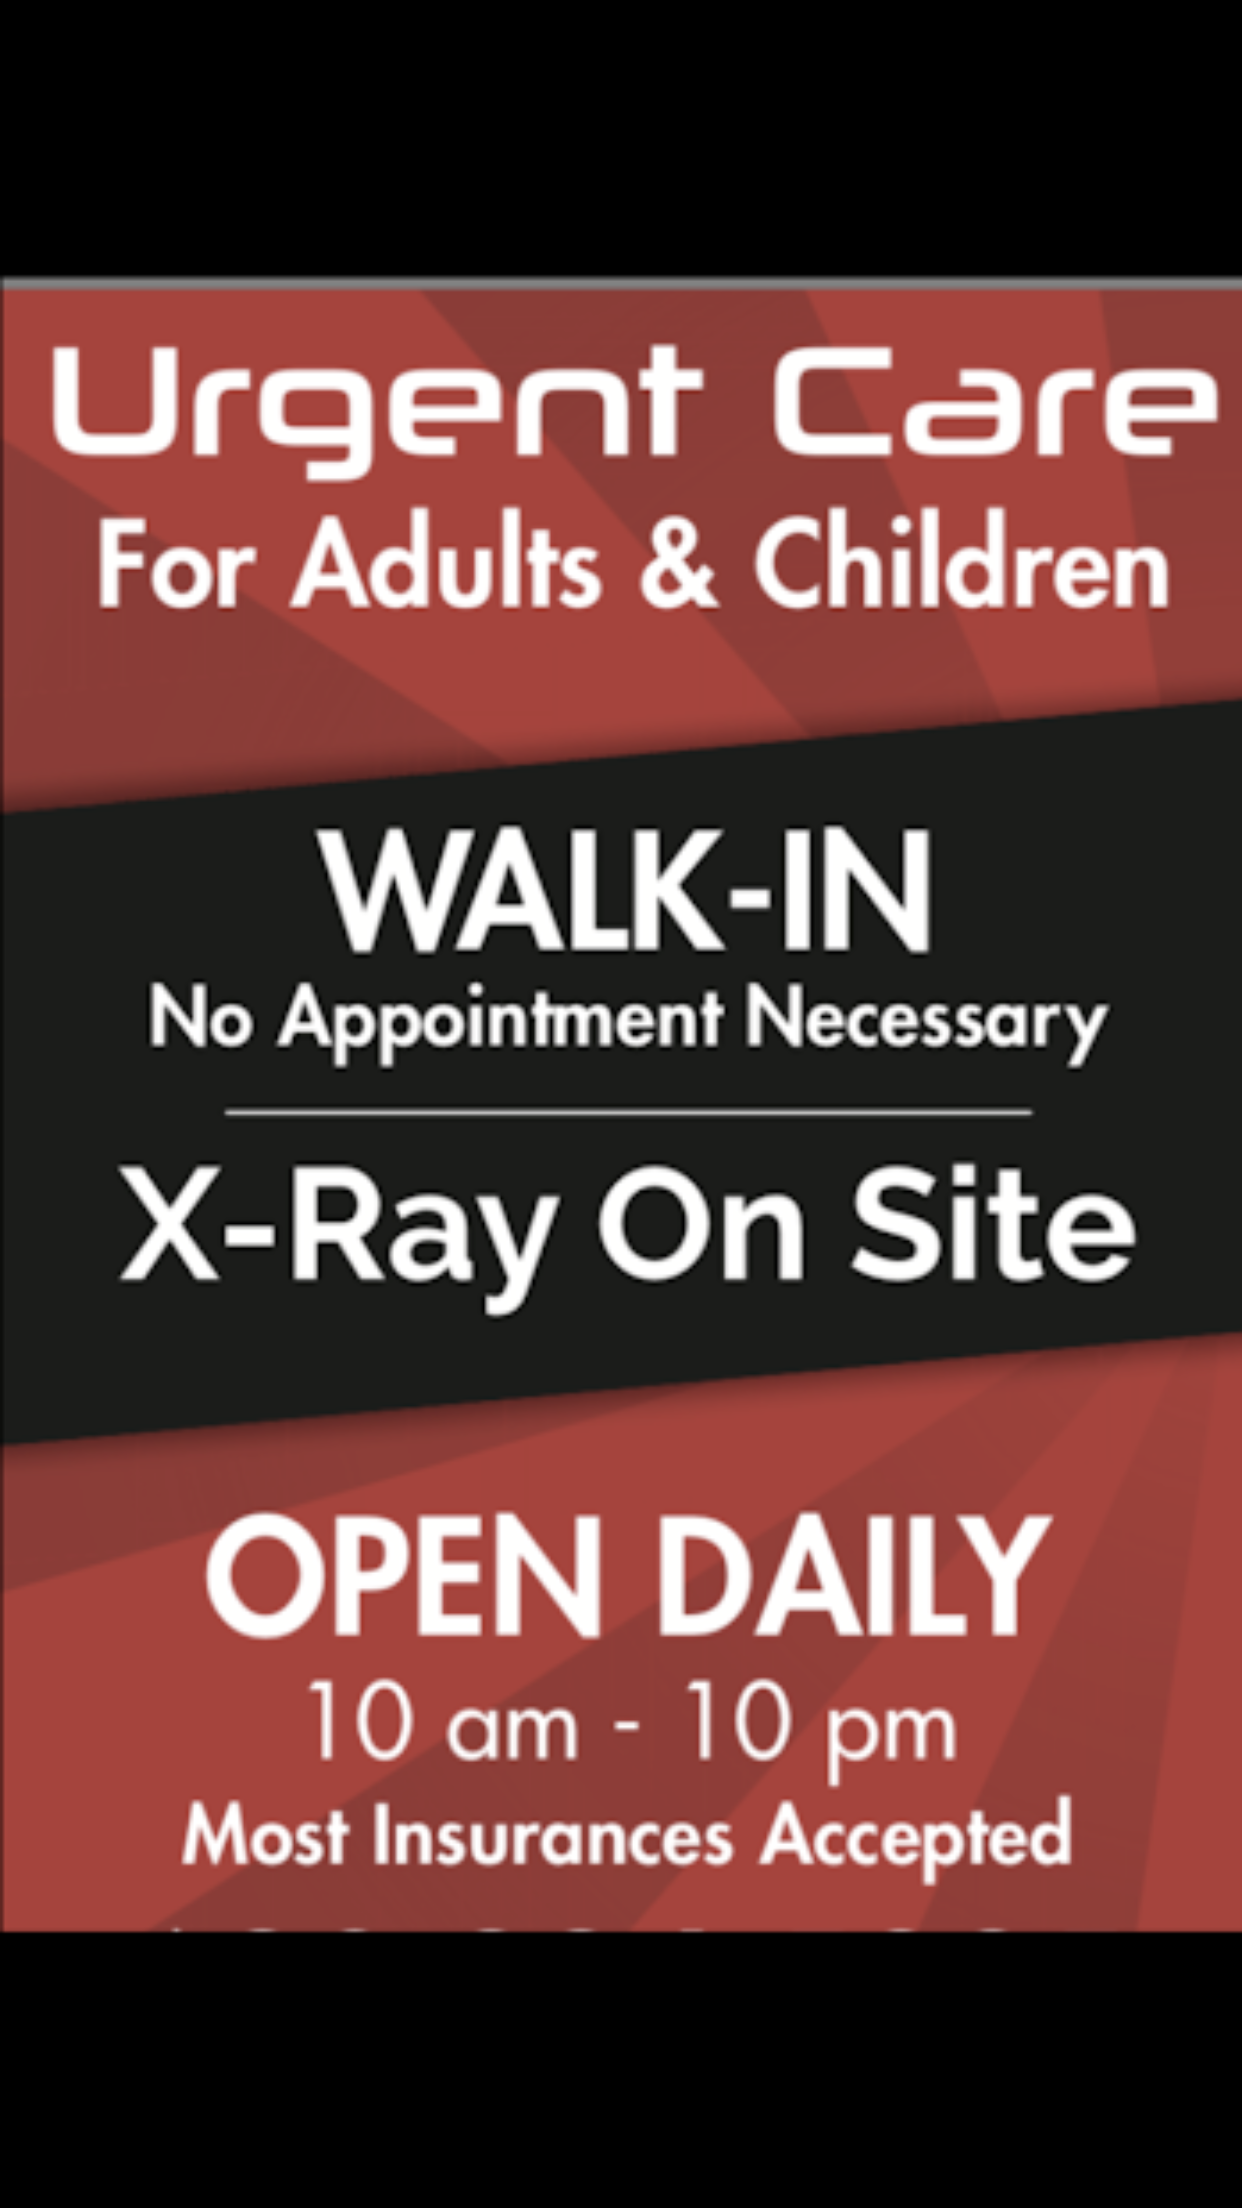 Open daily 10a10p. Serving all ages for injuries and